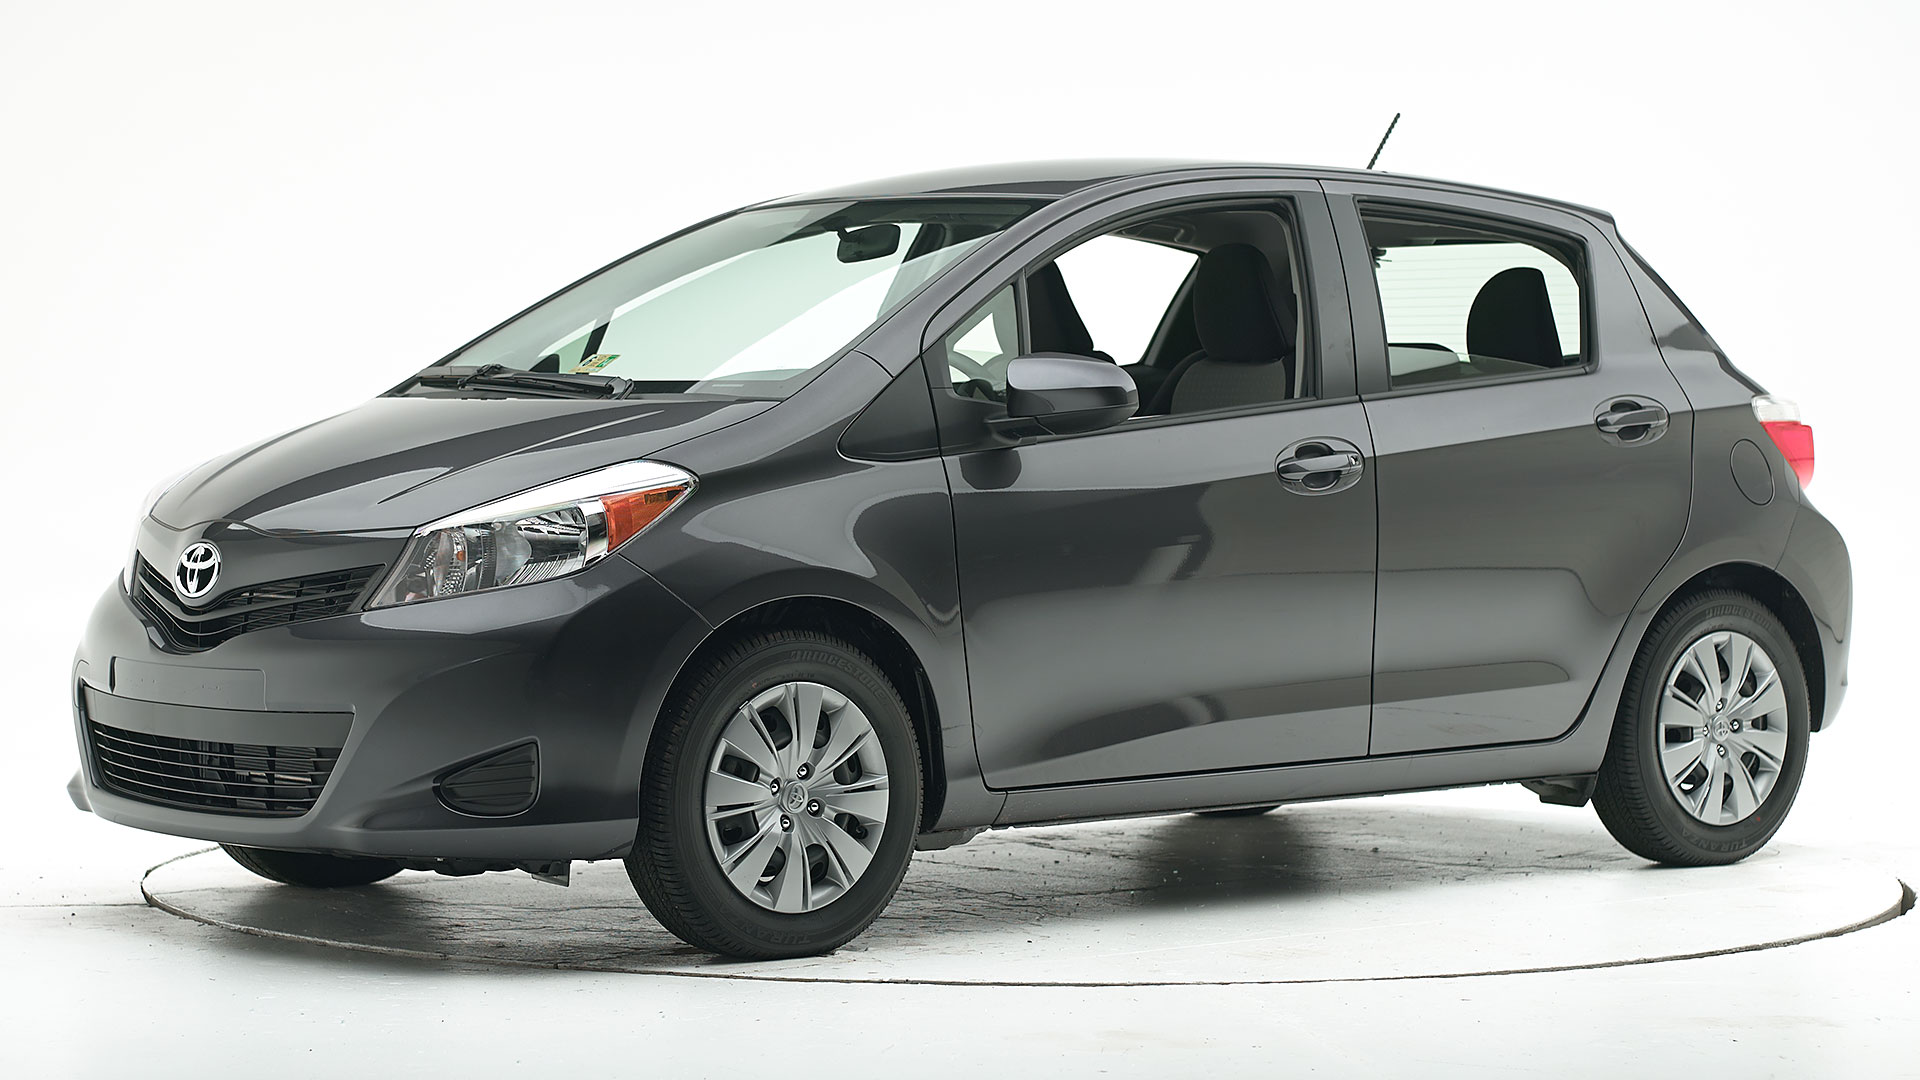 2019 Toyota Yaris 4-door hatchback